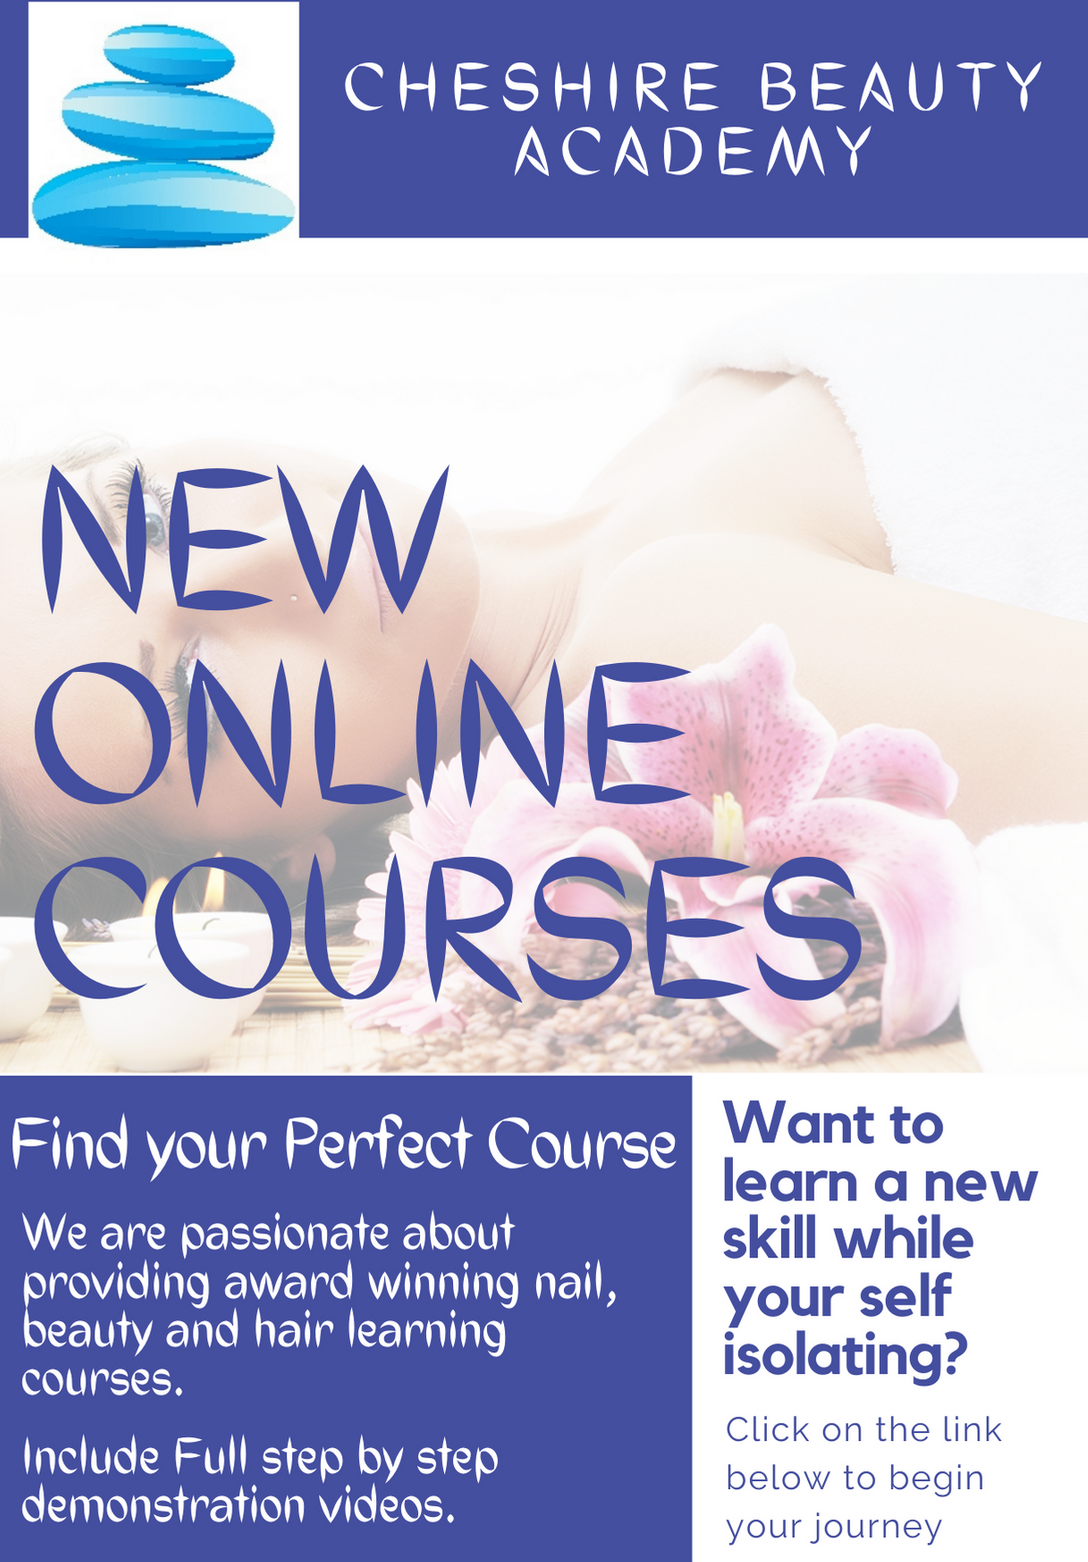 Custom coursework uk